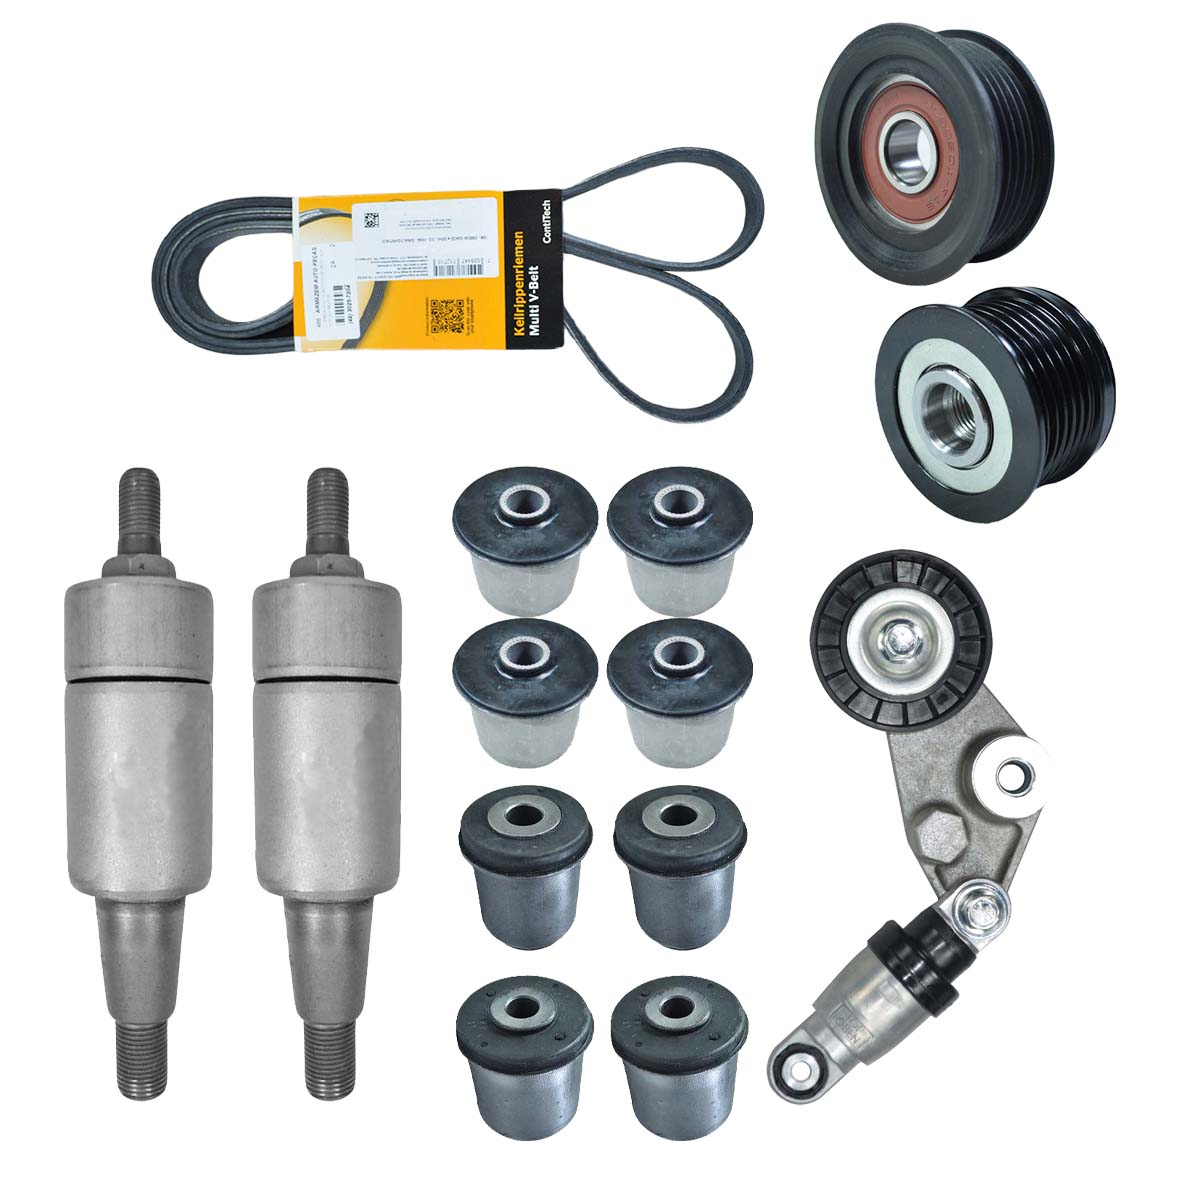 KIT BUCHAS BANDEJAS COMPLETO + KIT TENSOR E POLIAS SSANGYONG ACTYON SUV APÓS 2008